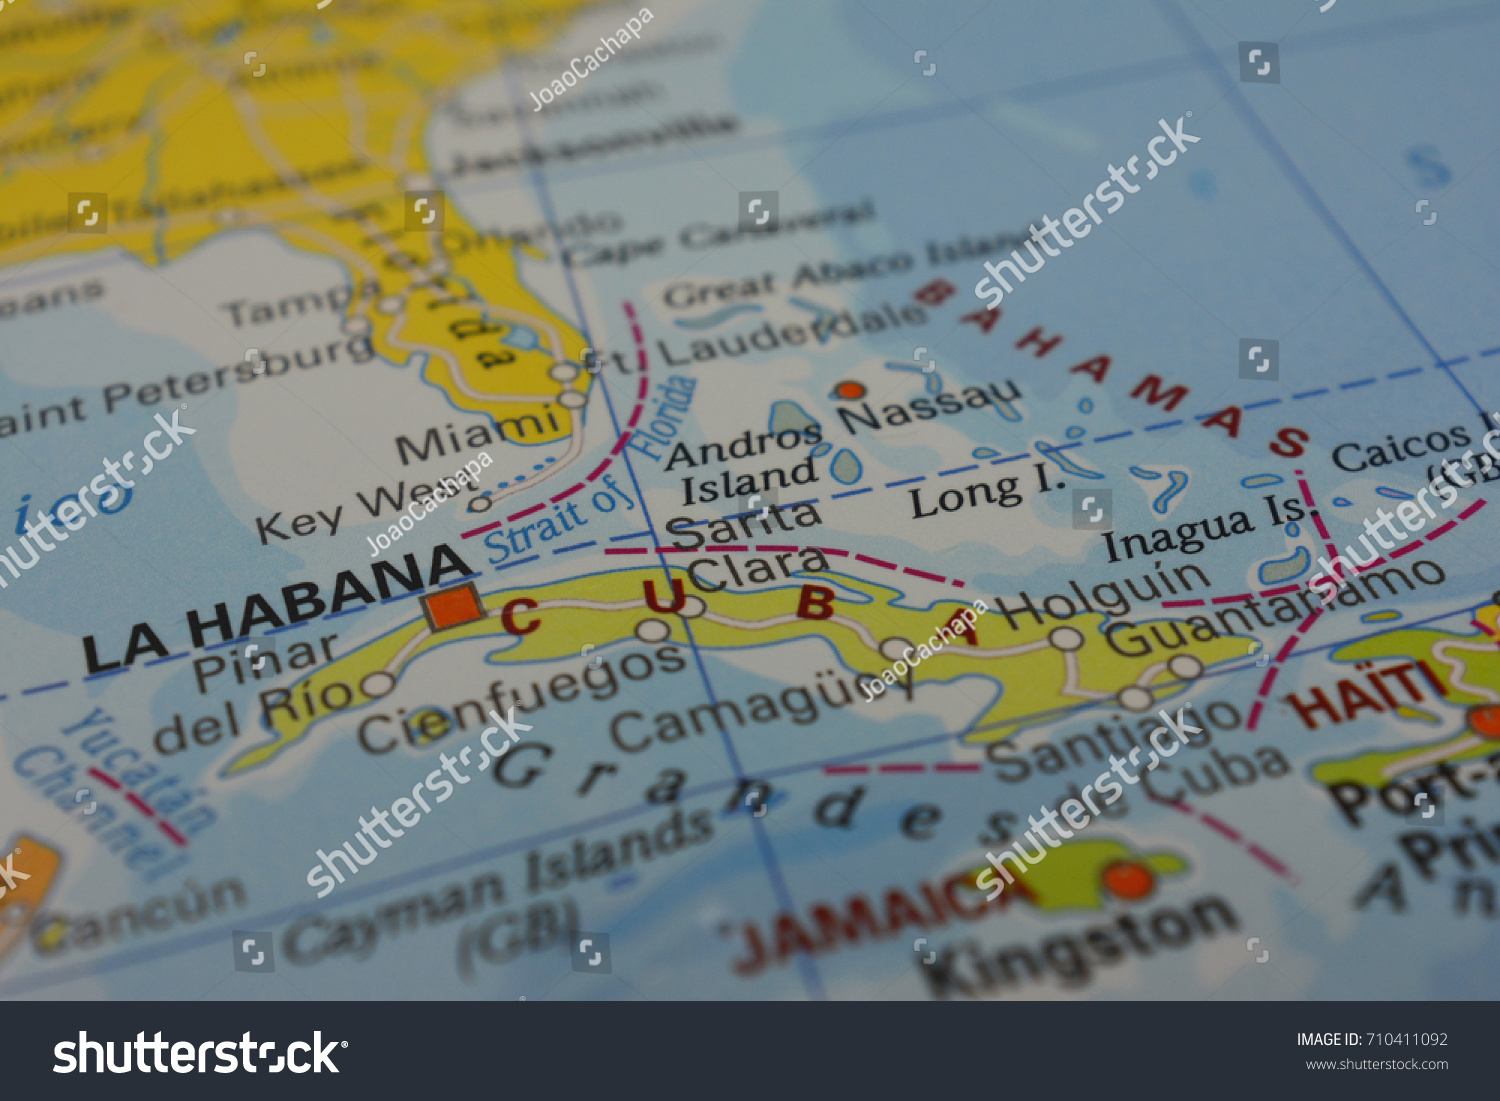 cuba and puerto rico essay Sovereignty of puerto rico during the cold war during the height of the cold war  cuba began negotiating arms purchases from the eastern bloc in march 1960.